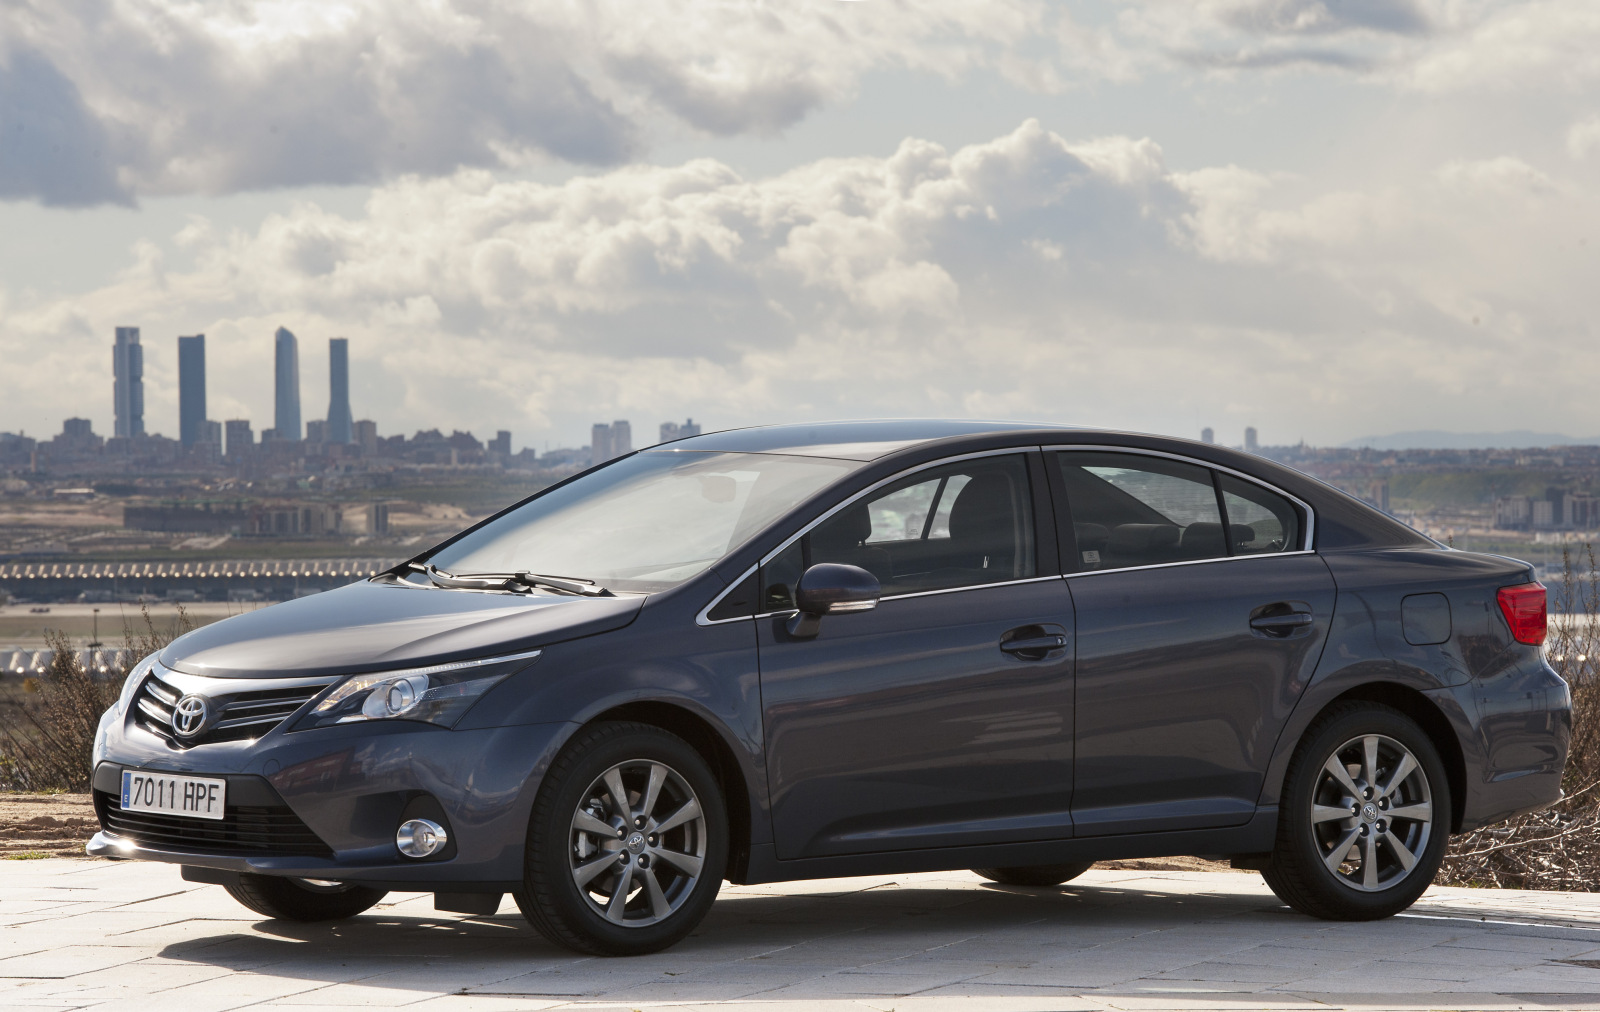 2013 toyota avensis iii pictures information and specs. Black Bedroom Furniture Sets. Home Design Ideas